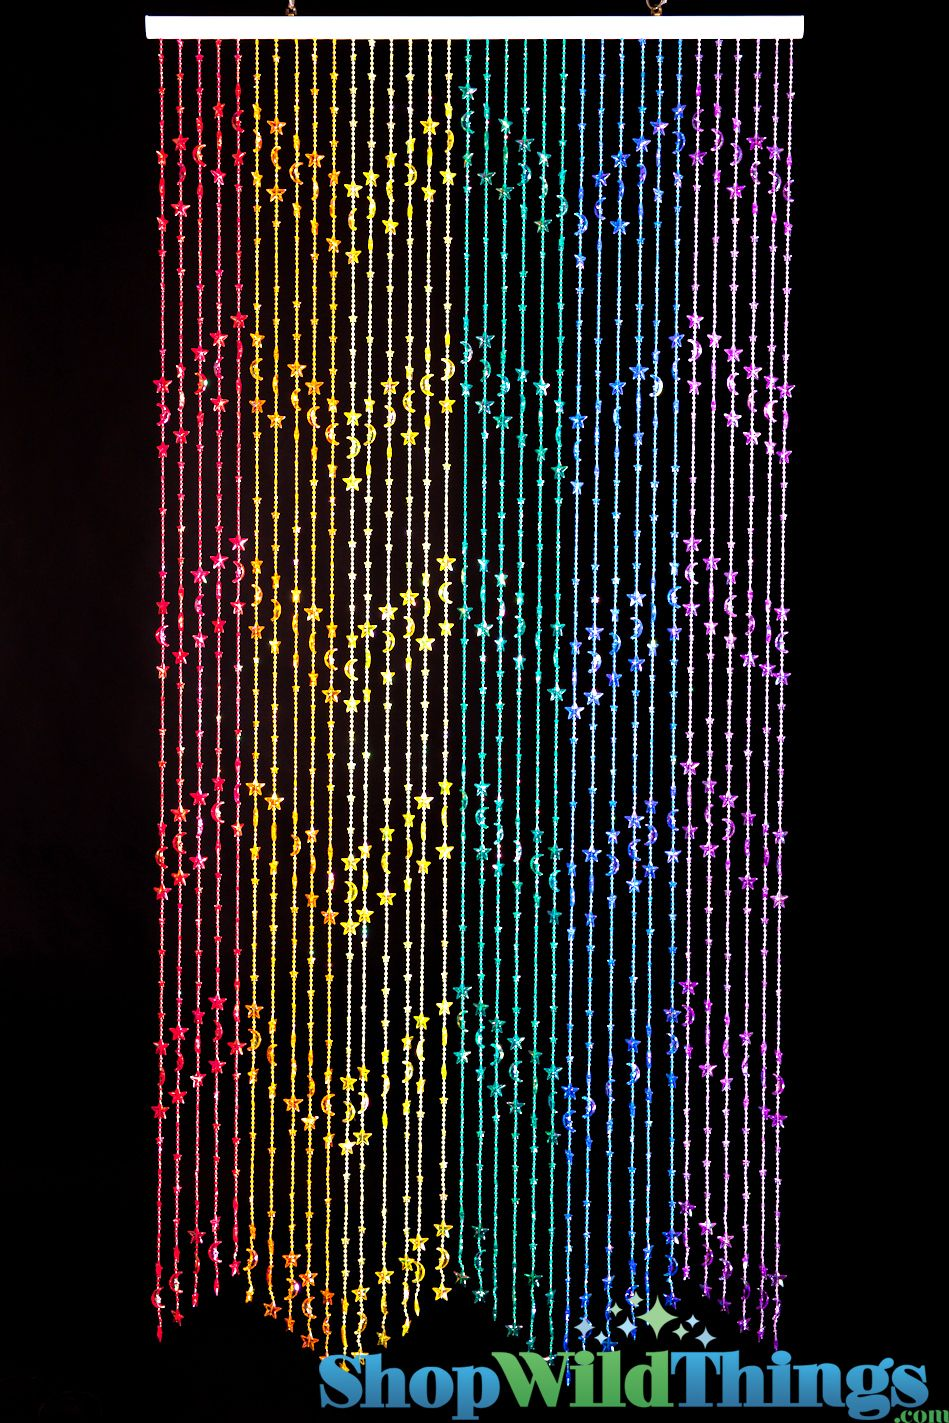 Beaded Curtains Google Search ⒷⒺⒶⒹⒺⒹ ⒸⓊⓇⓉⒶⒾⓃ Beaded